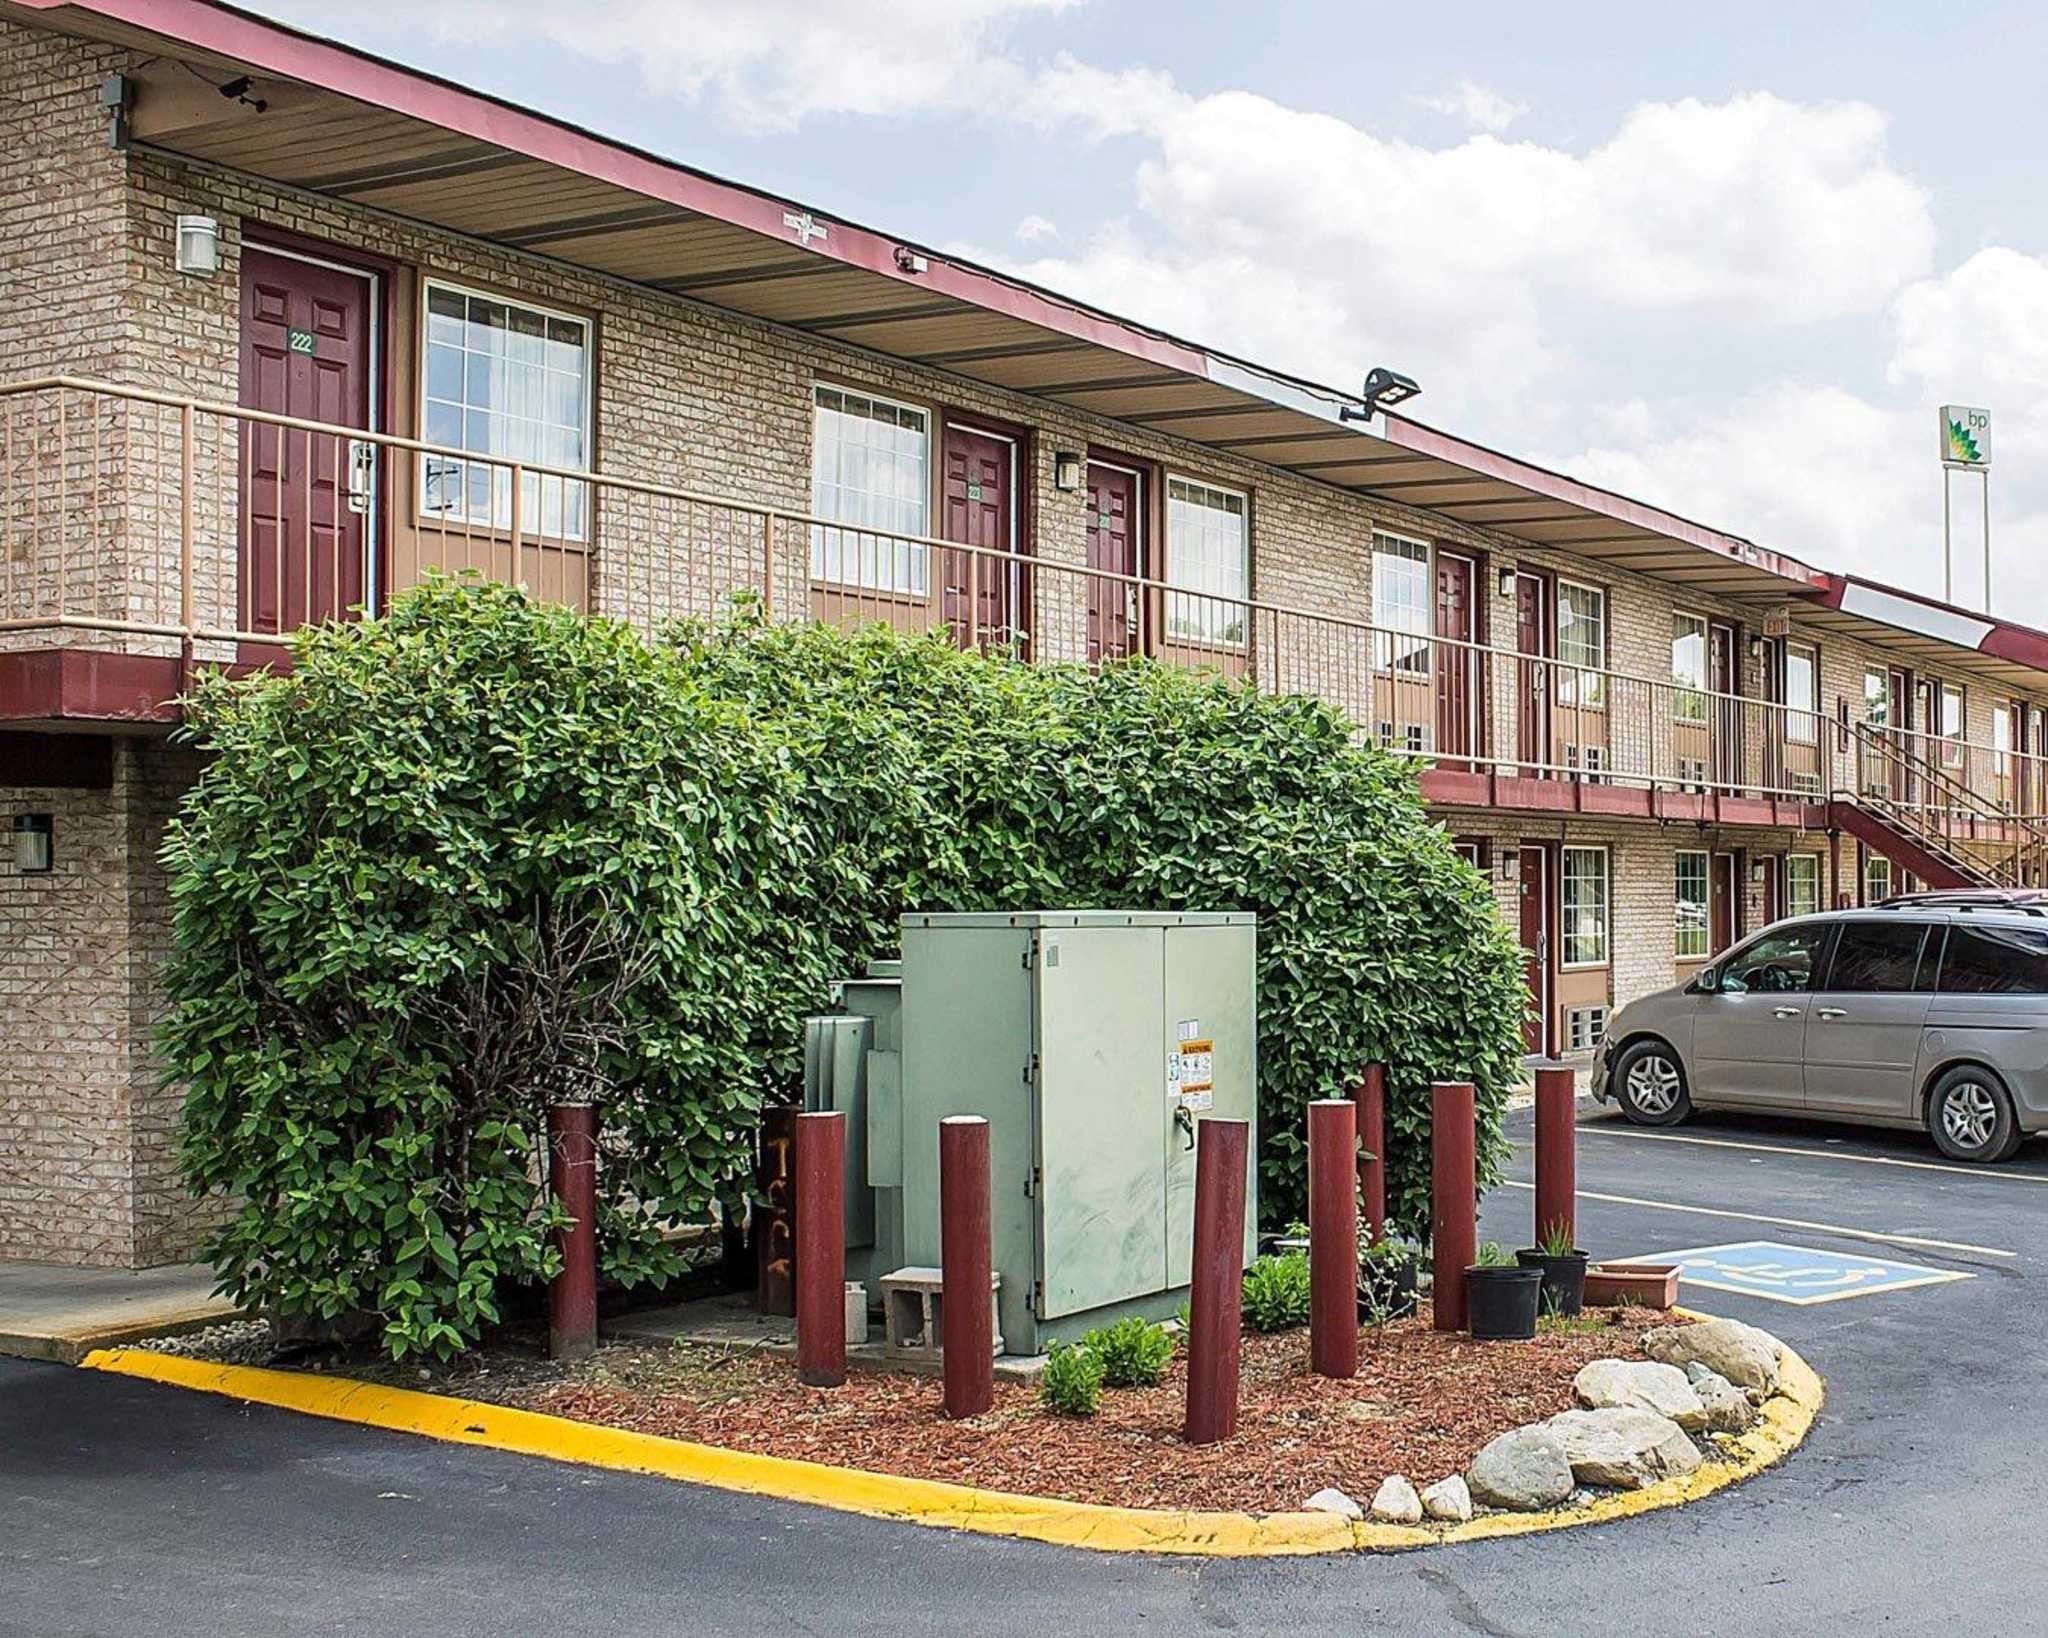 Hotels Near Columbus Zoo With Smoking Rooms